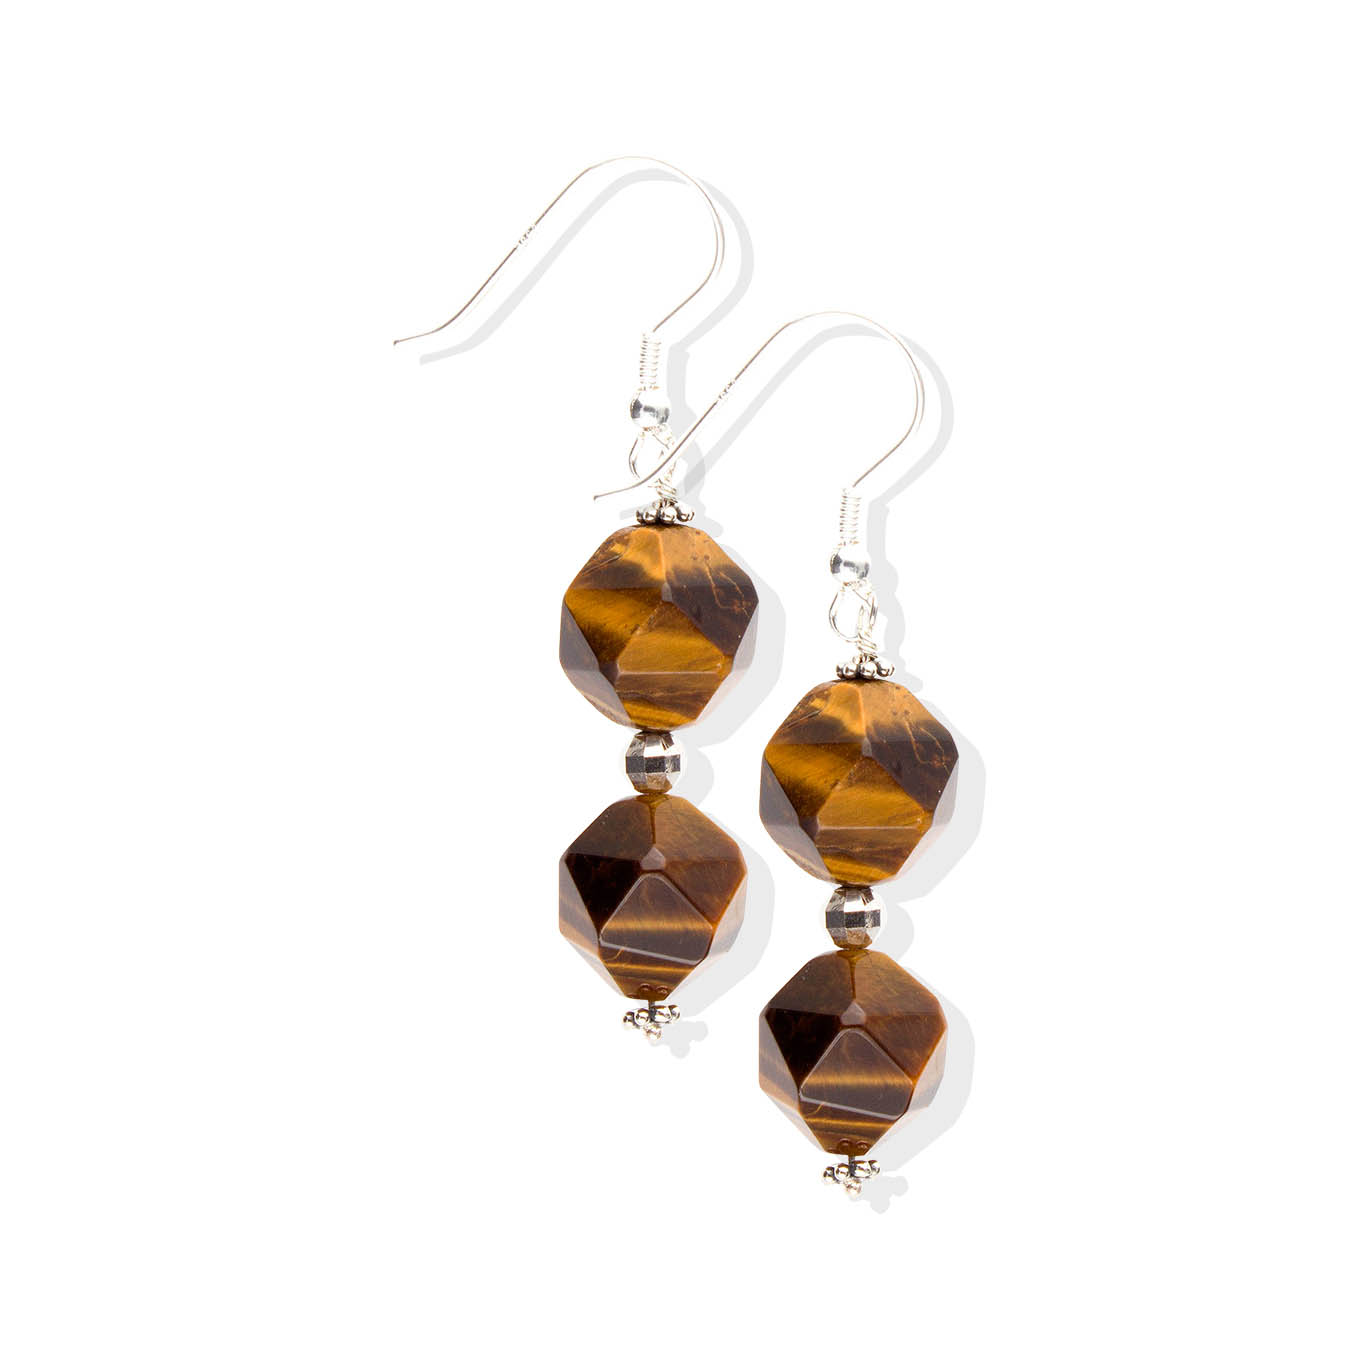 Handcrafted bold bead jewelry made of faceted tiger eye and Karen hill